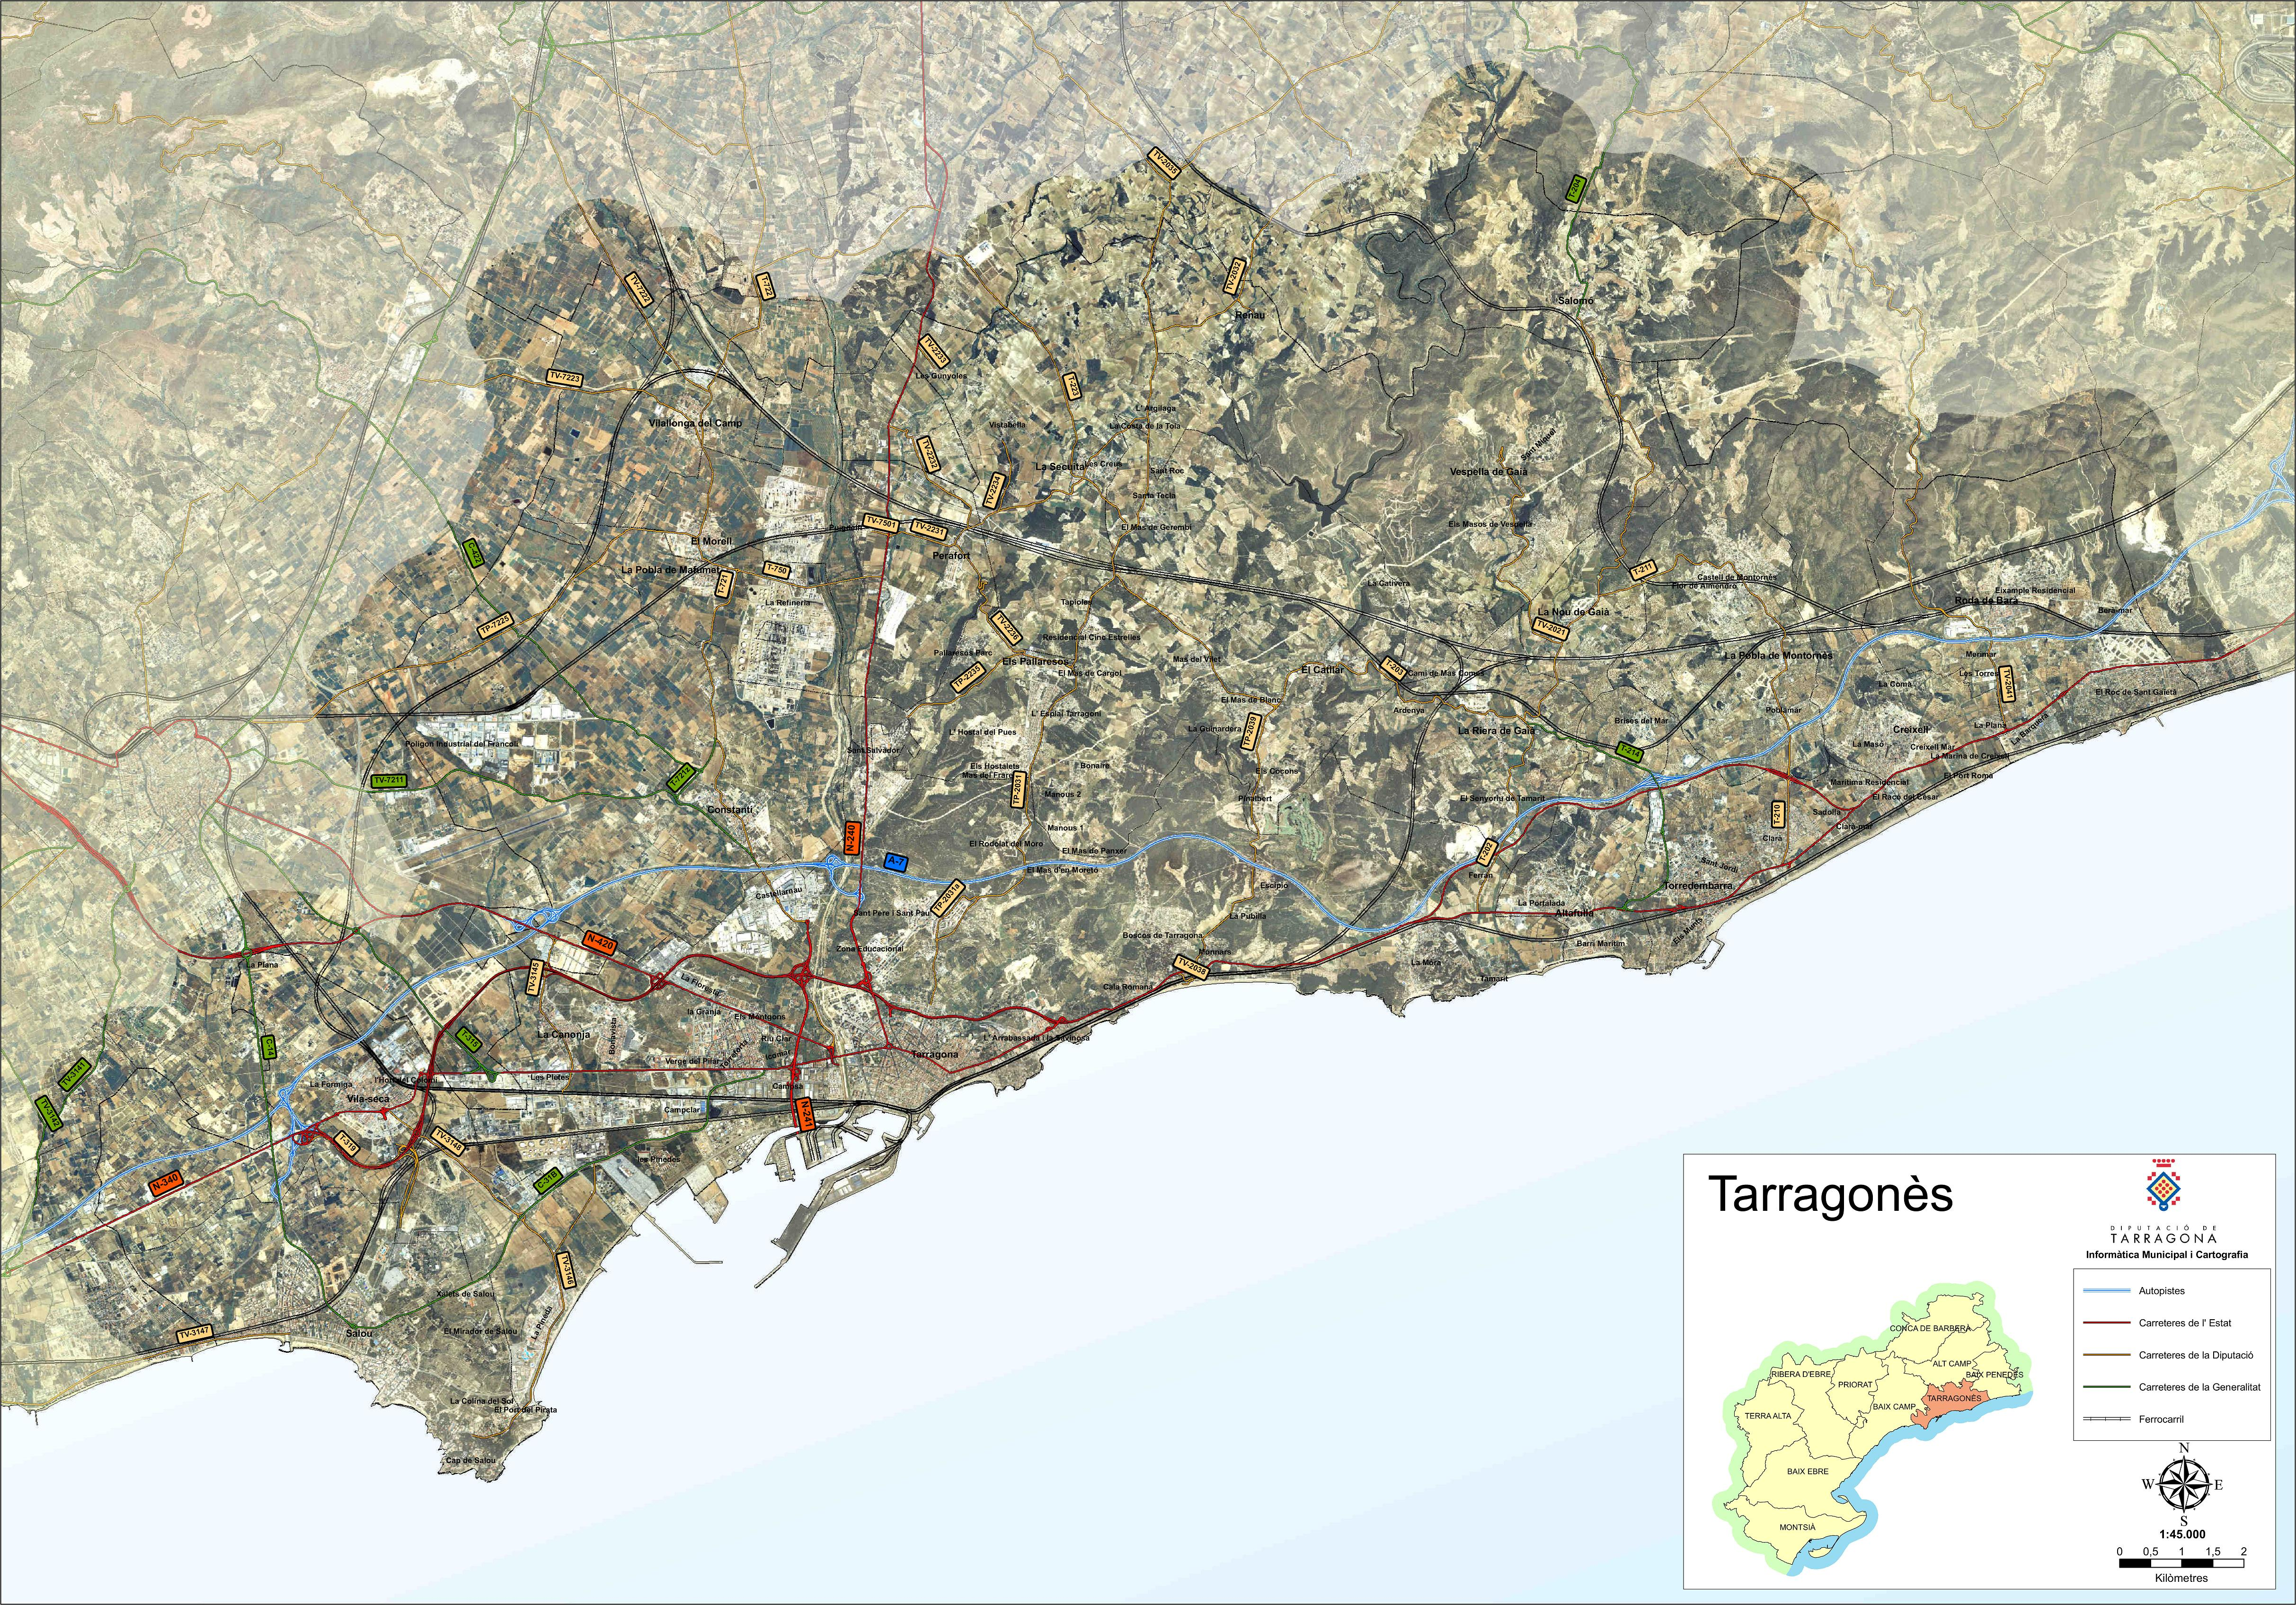 Satellite and road map of the comarca of Tarragonès